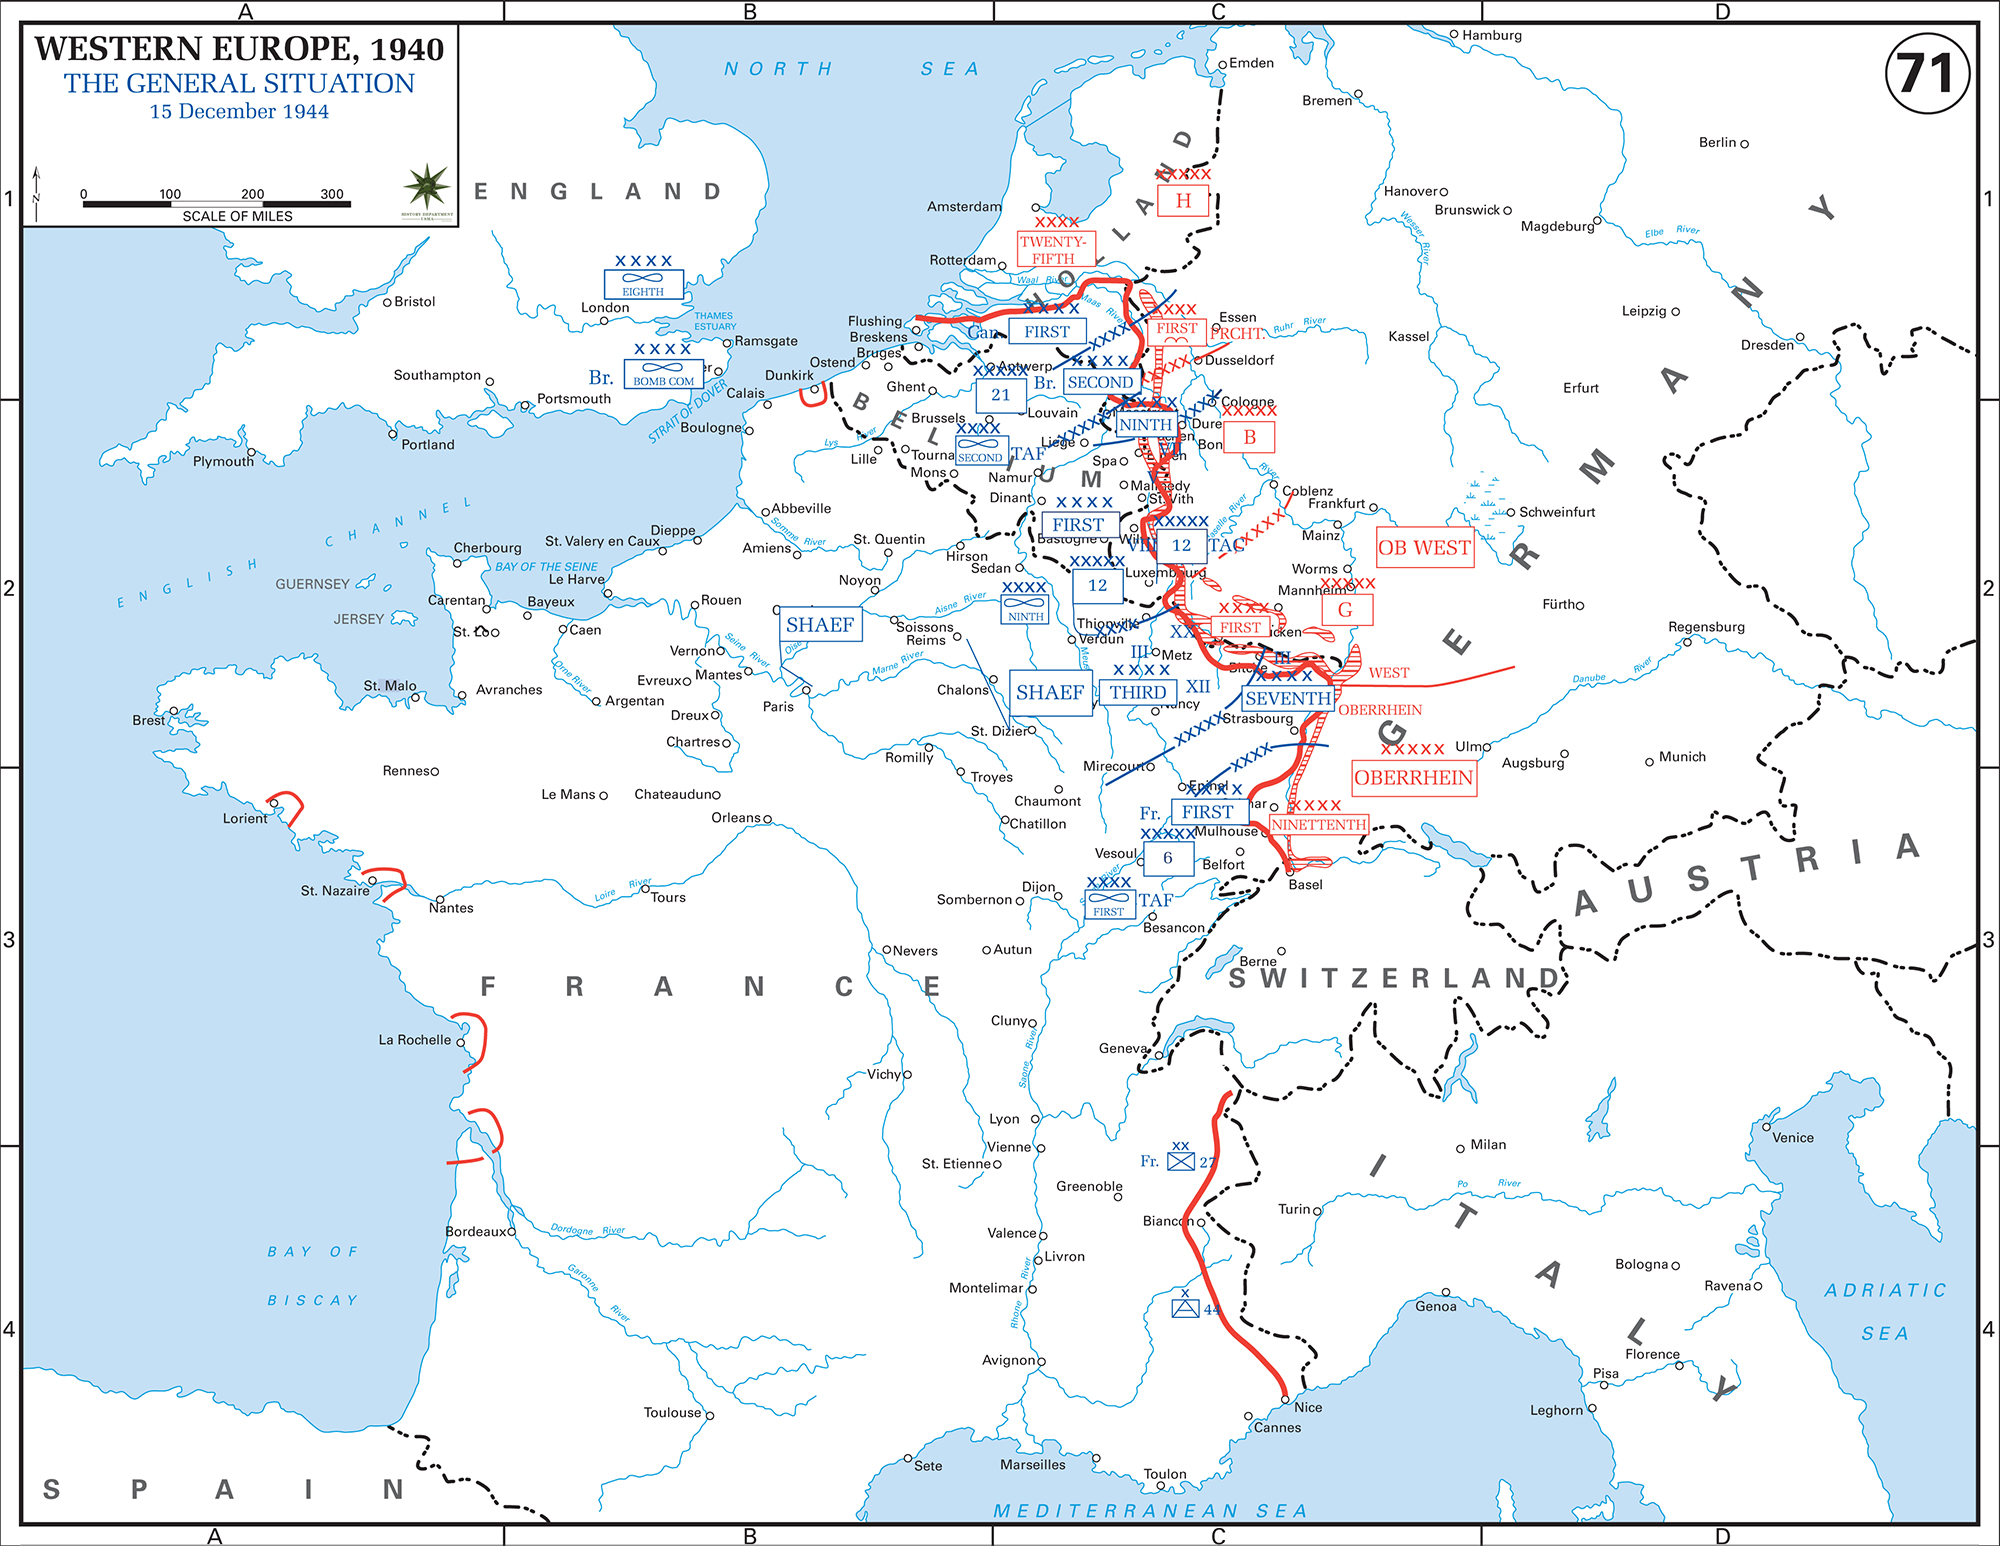 Map of World War II: Western Europe, The General Situation on December 15, 1944.